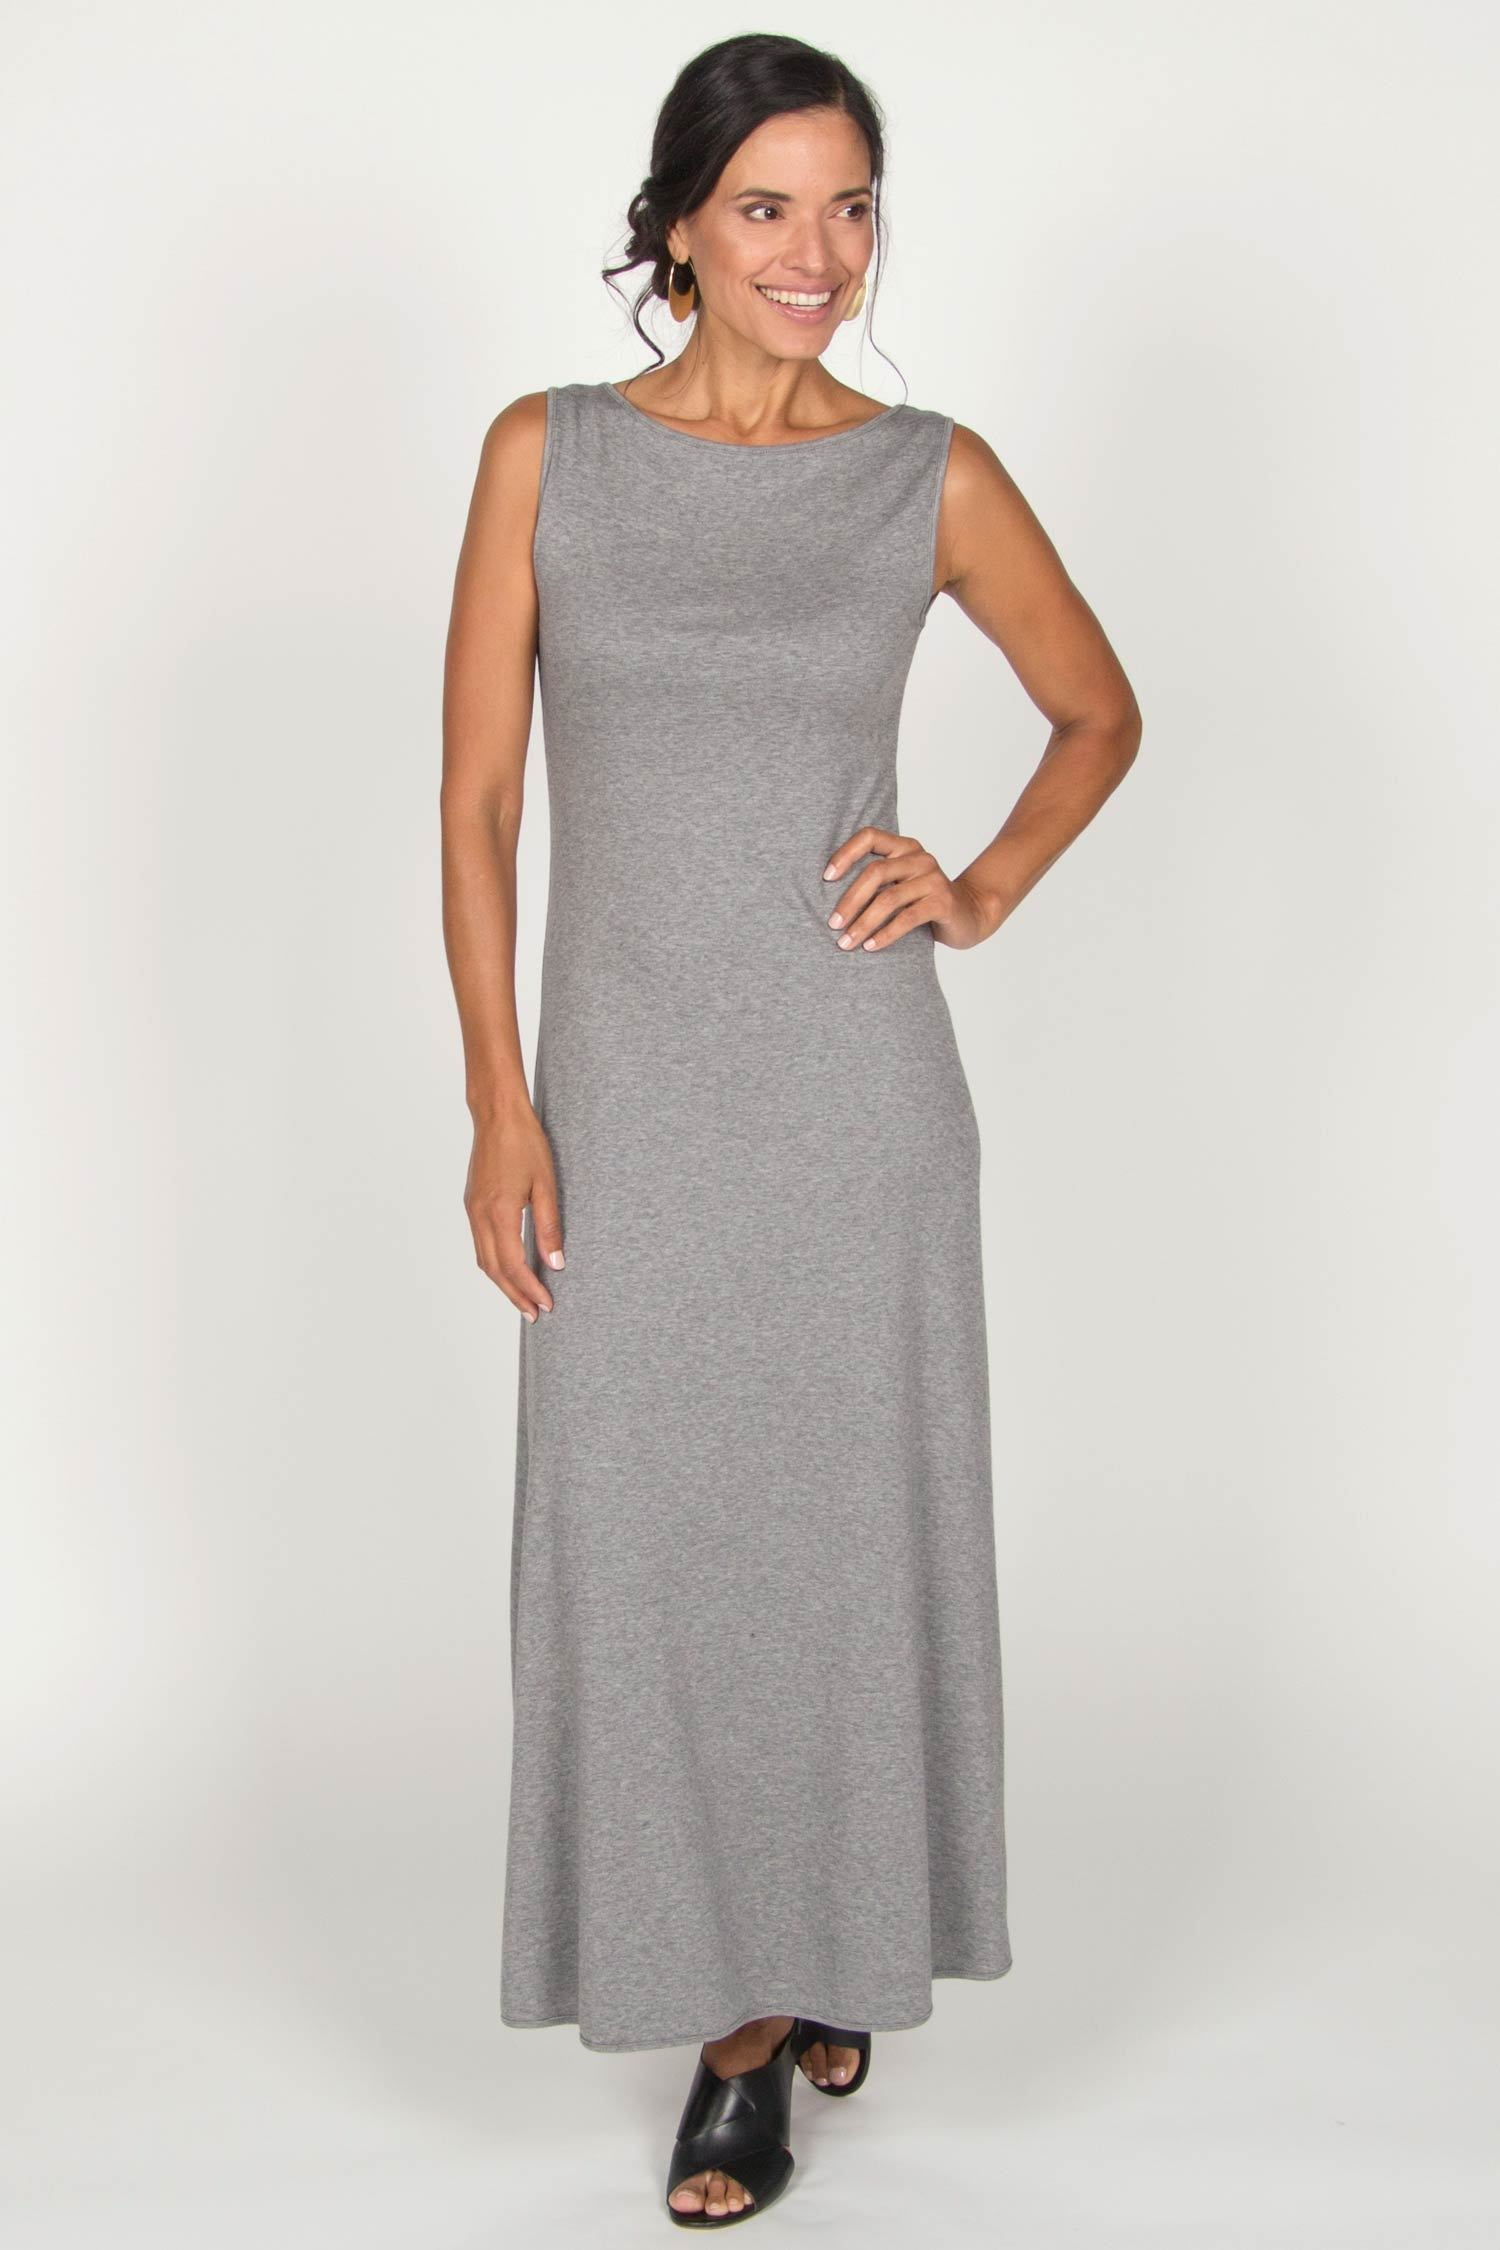 Womens Boatneck Maxi Dress in Gray | Slow Fashion